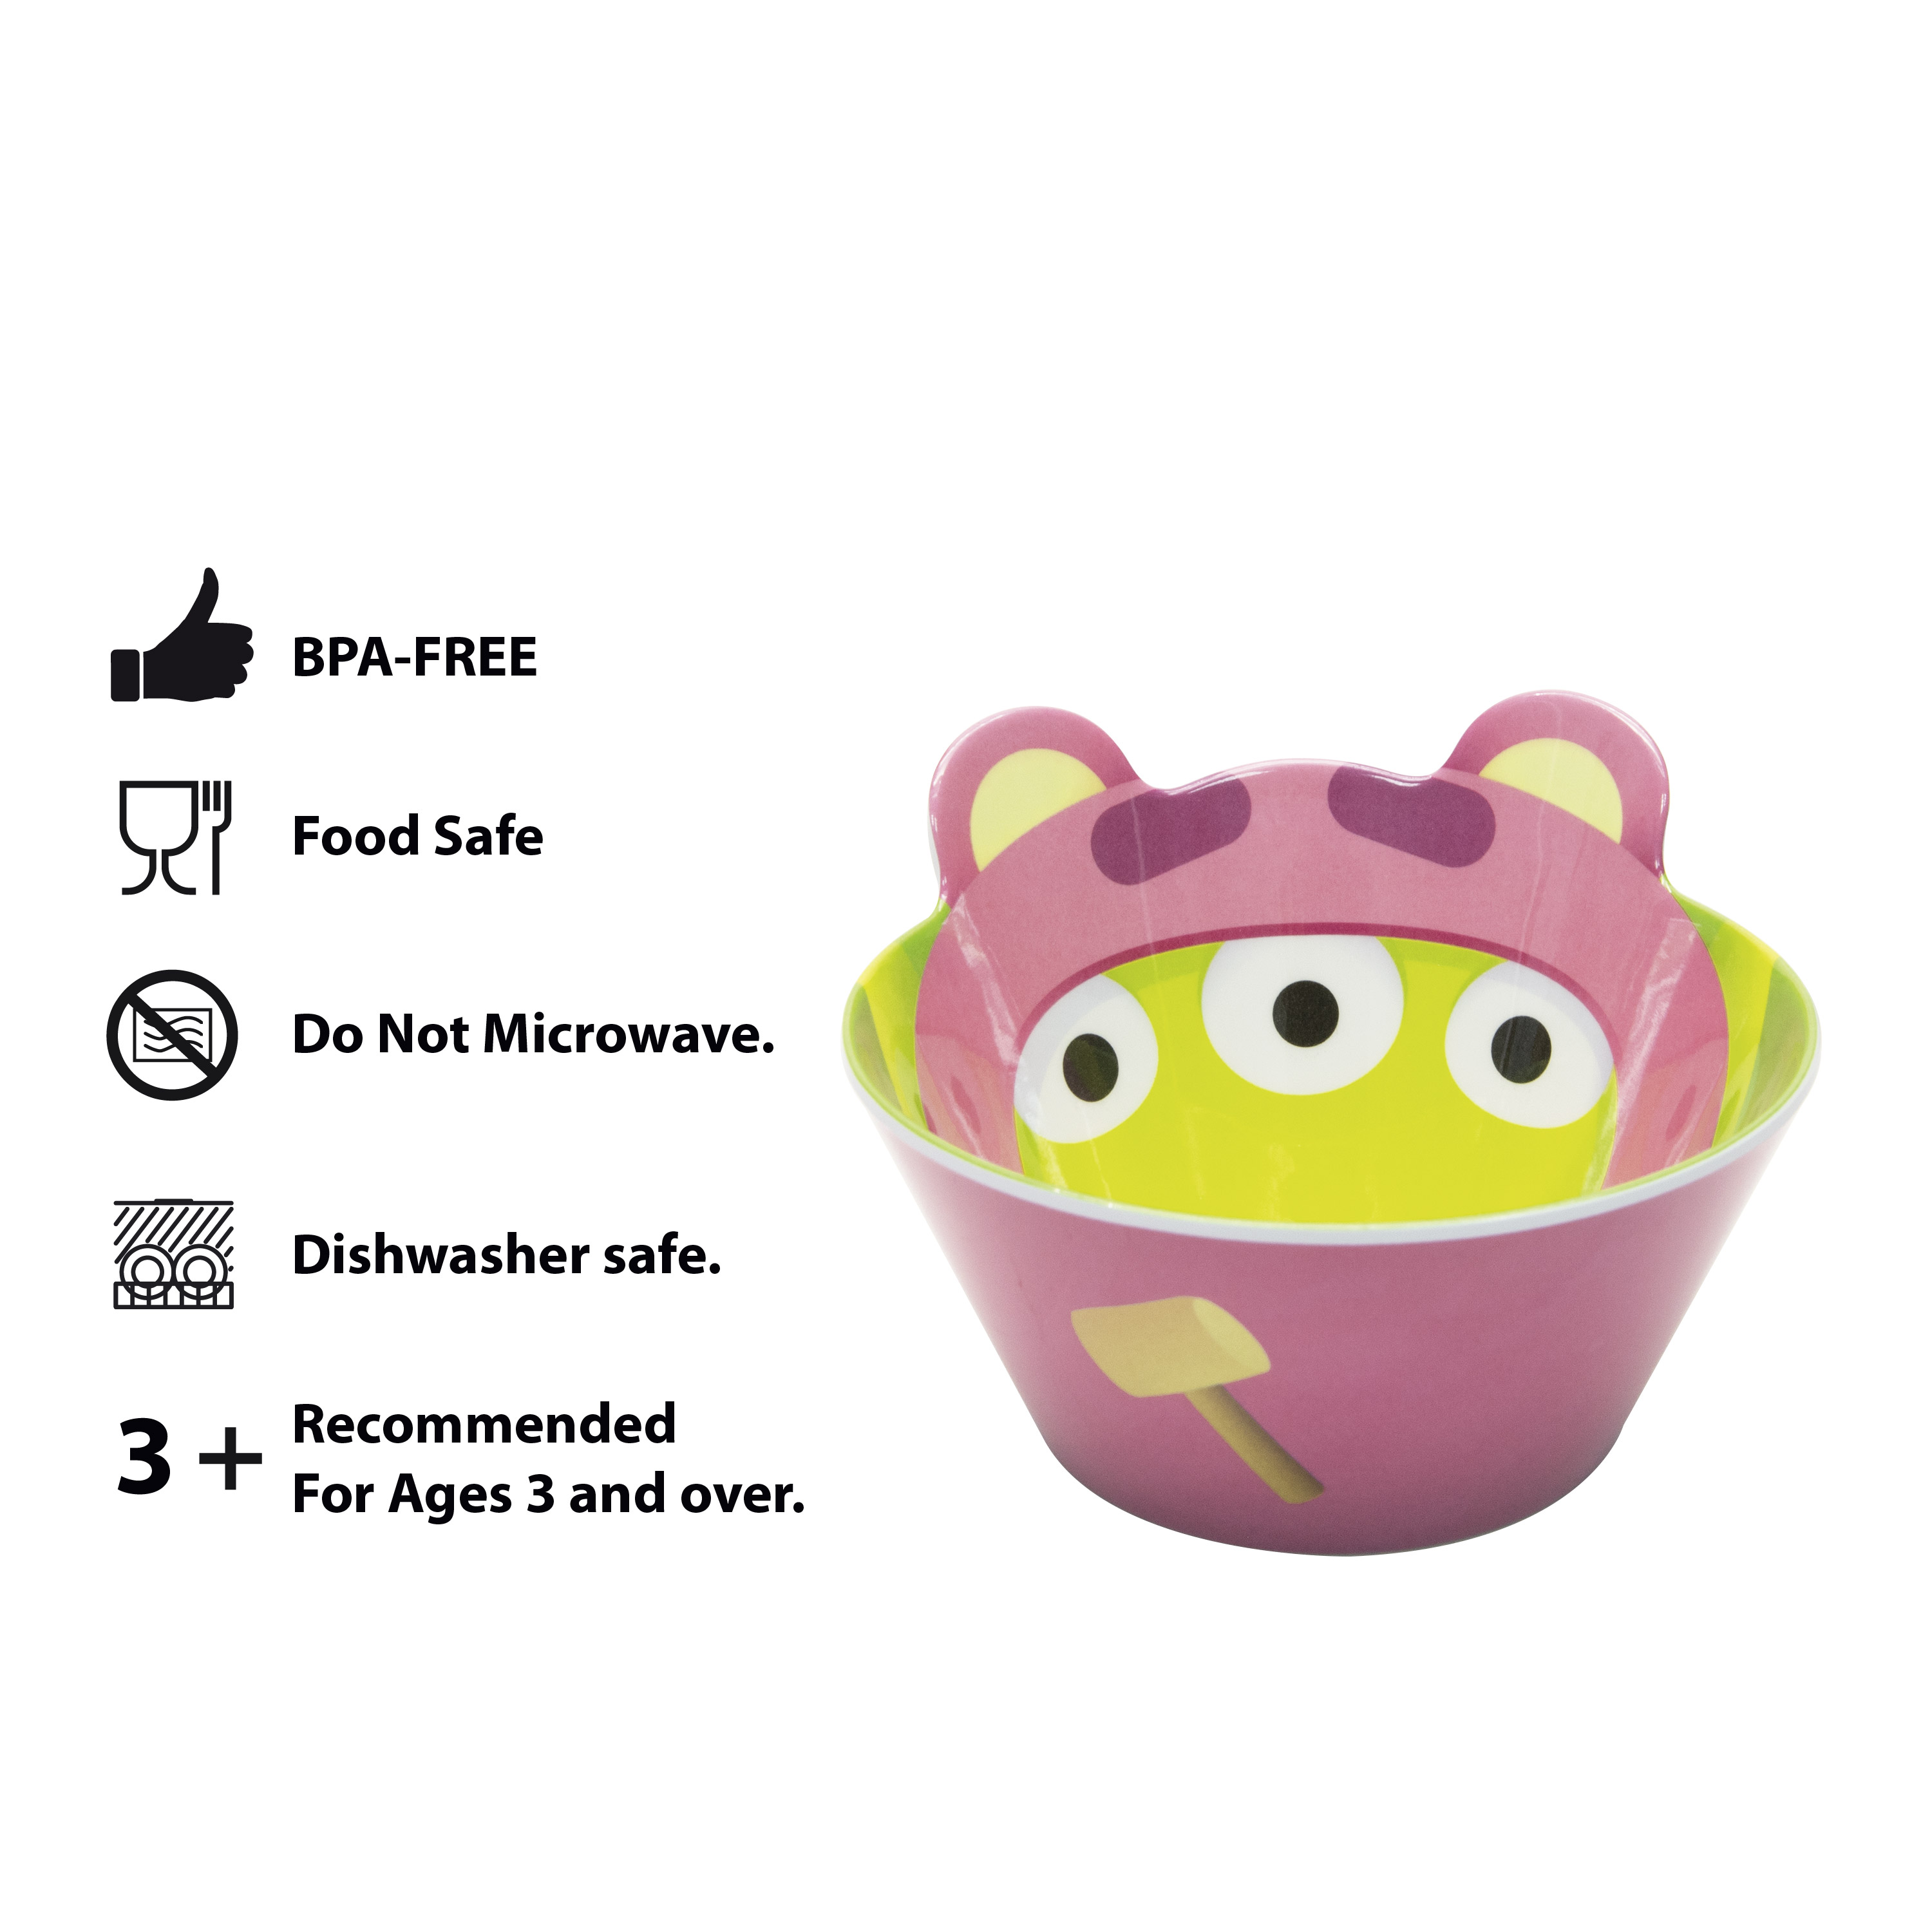 Disney and Pixar Toy Story 4 Plate and Bowl Set, Lotso, 2-piece set slideshow image 10